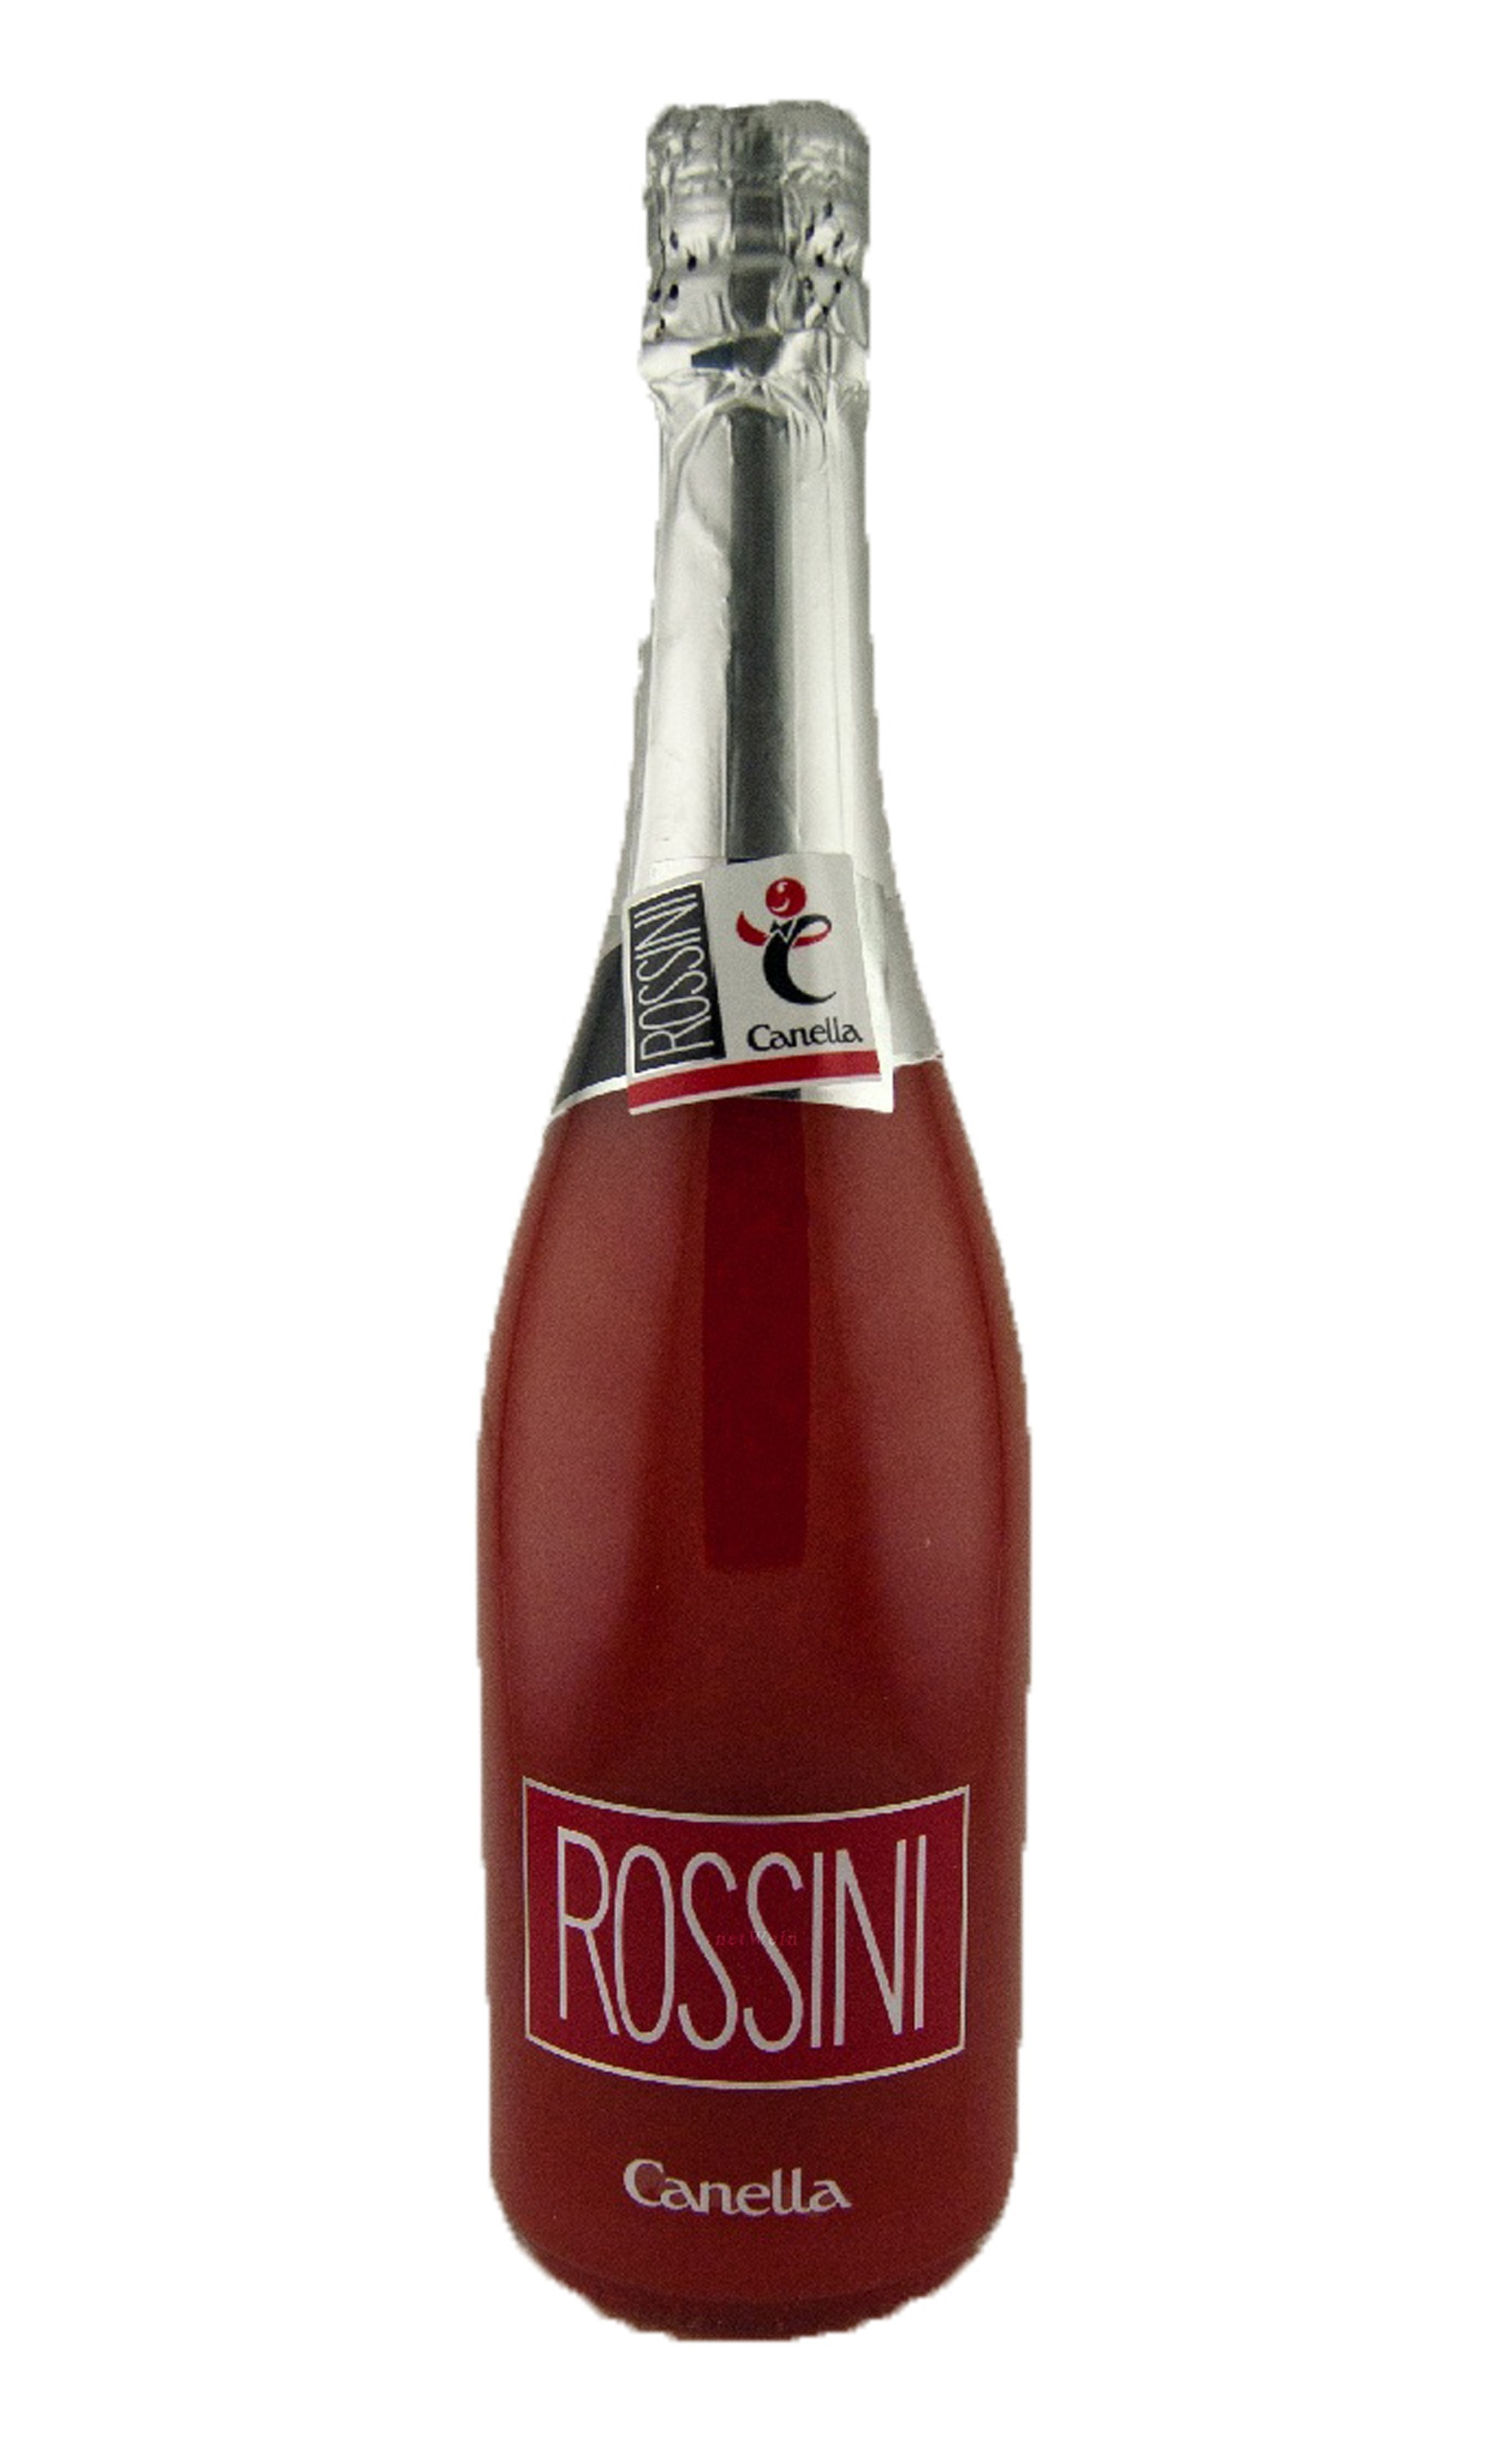 Canella - Rossini Cocktail